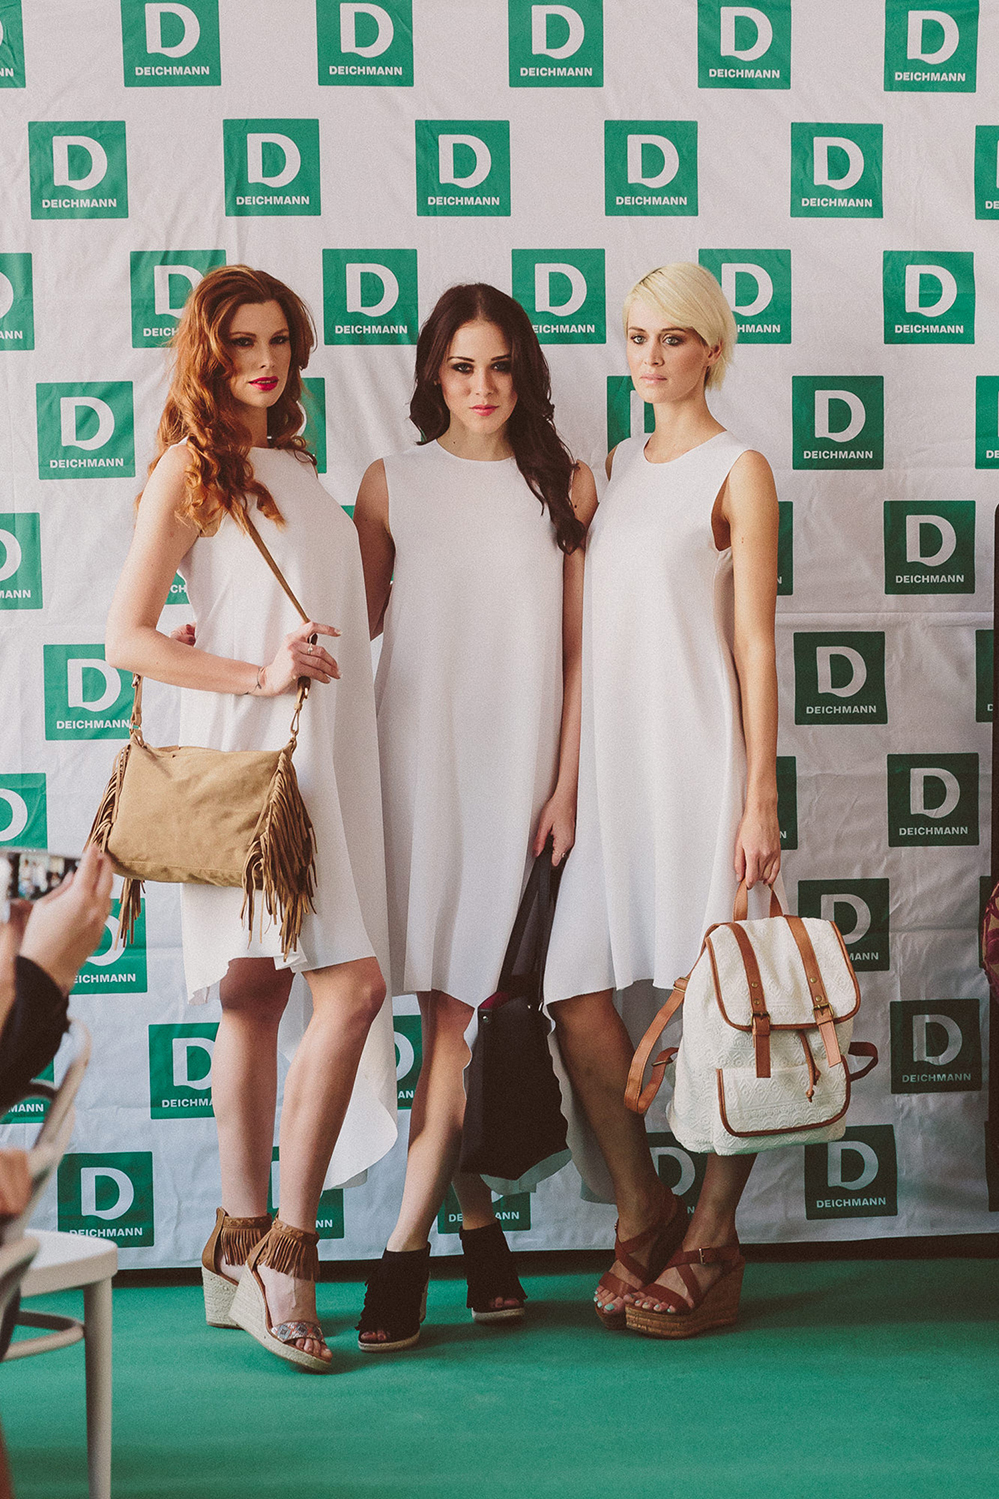 mayermccann_deichmann_lolita_press-12